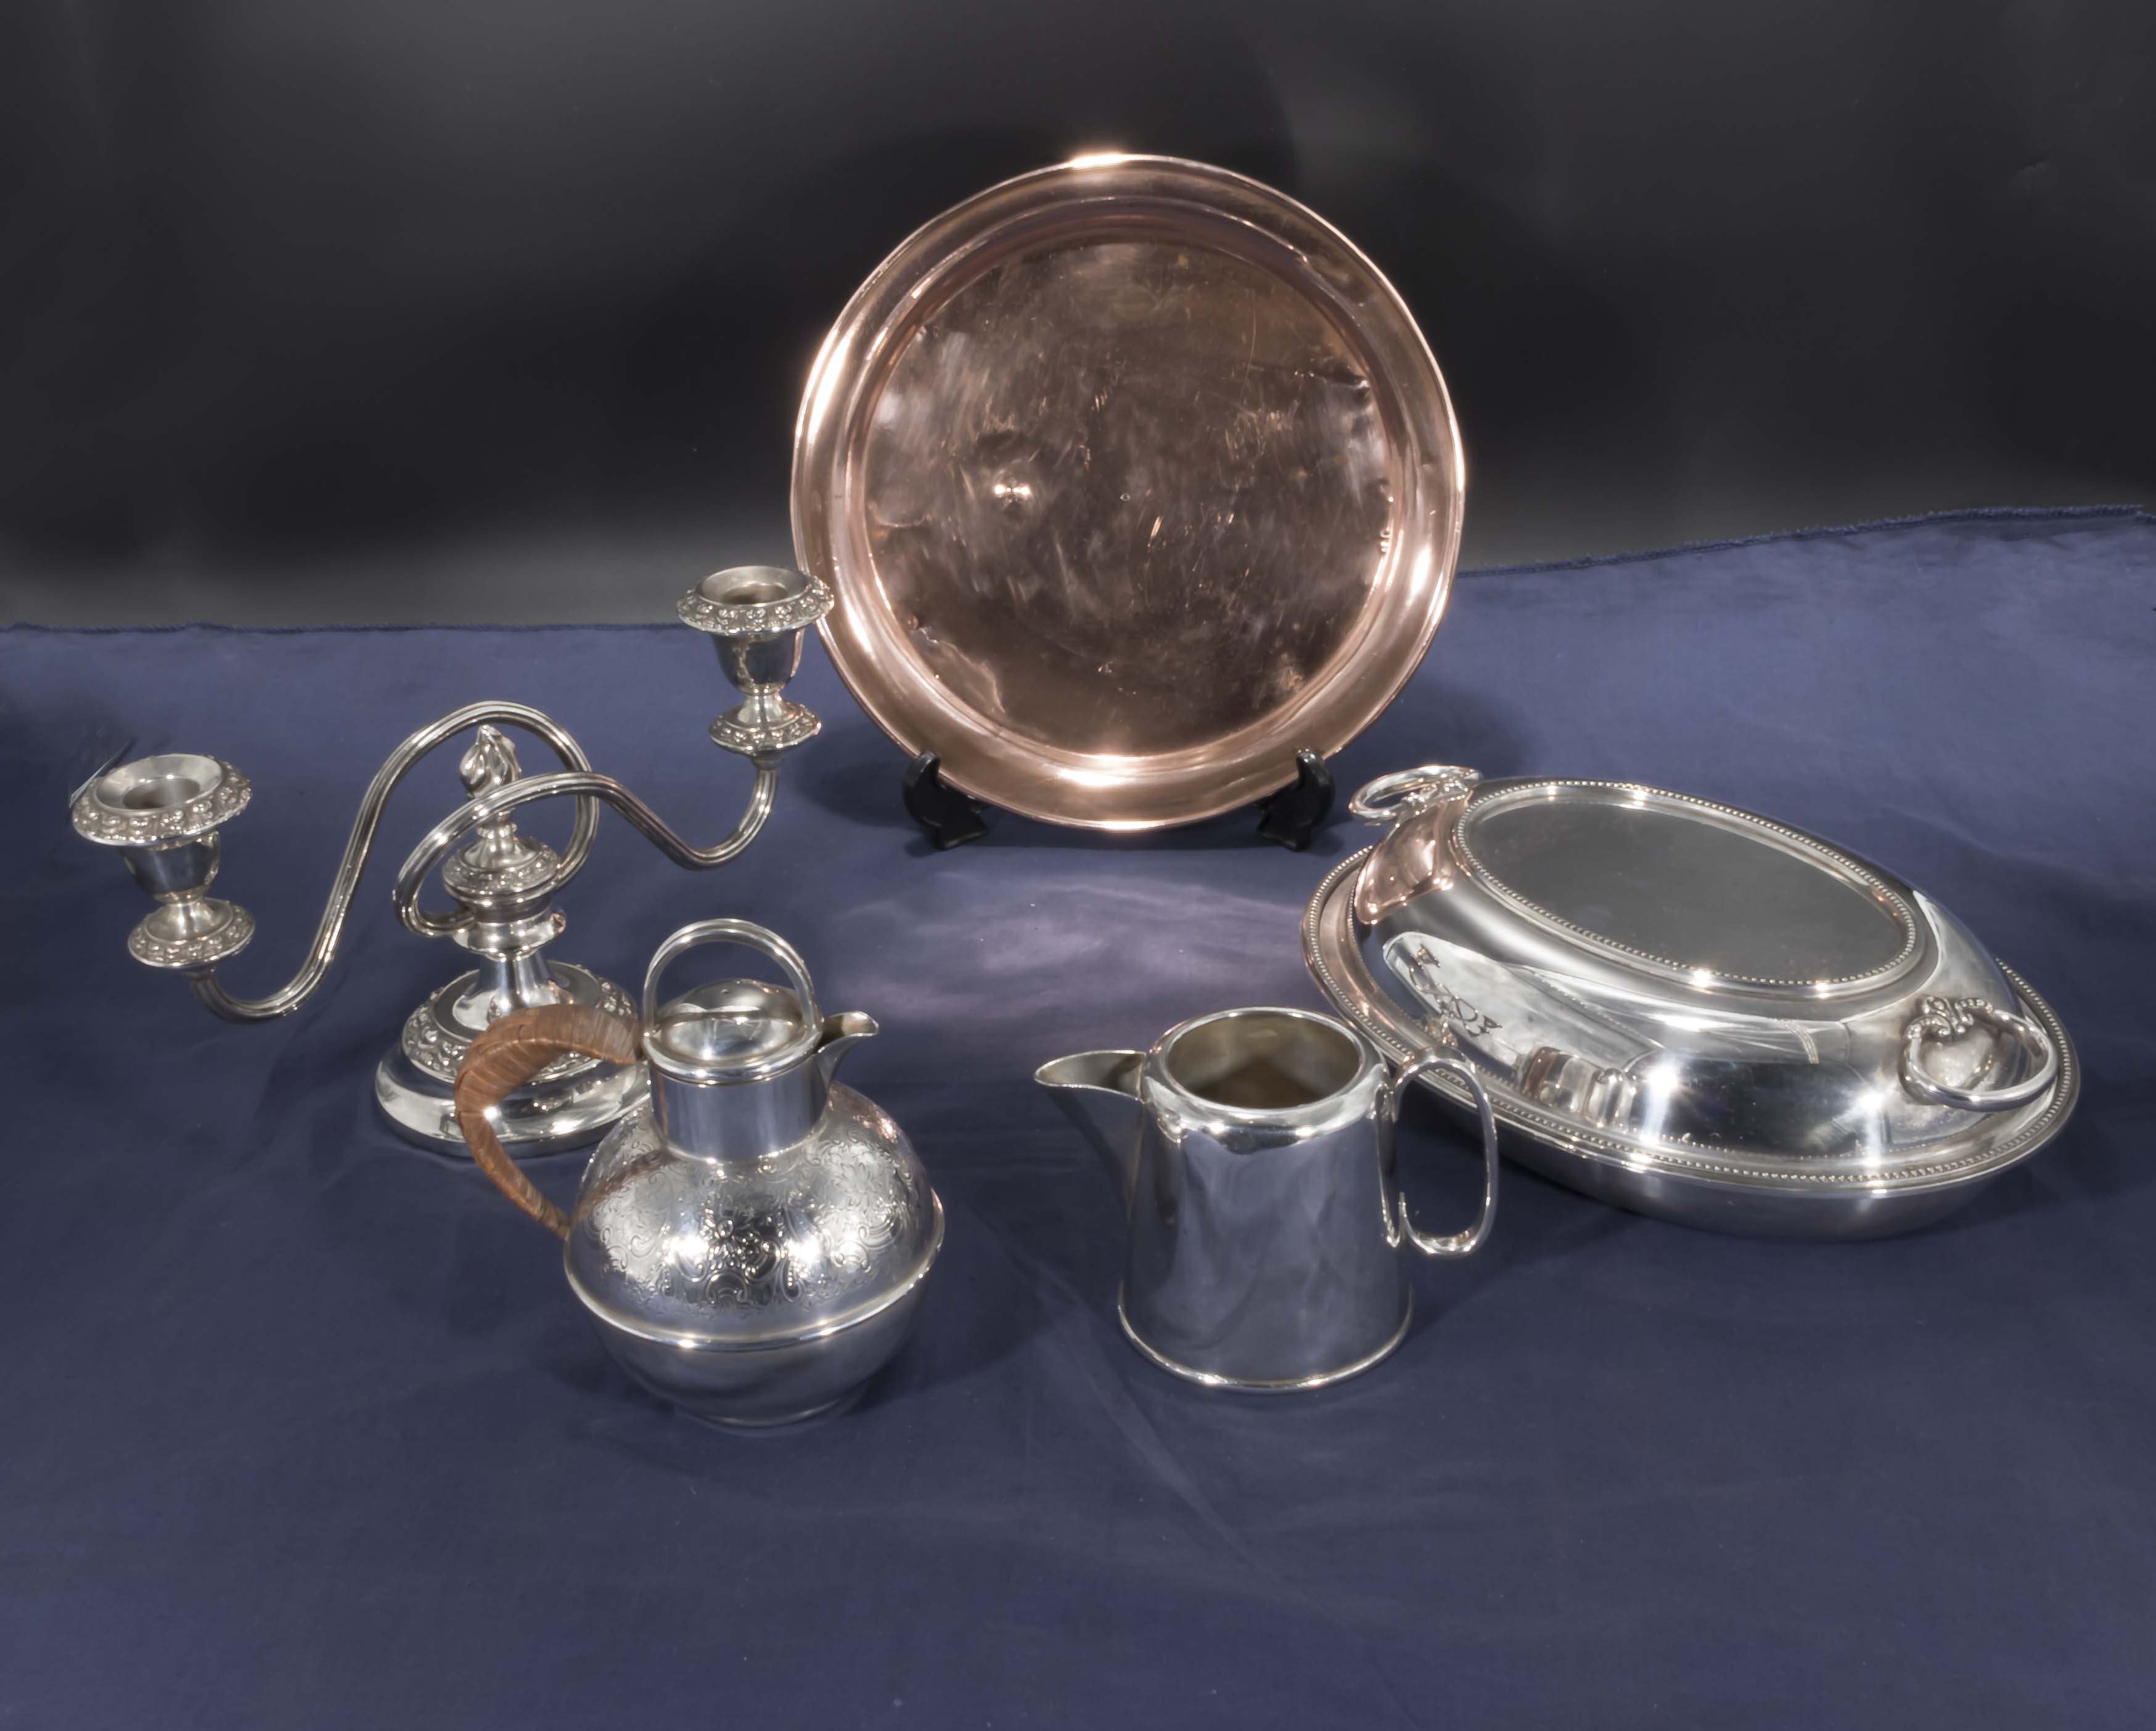 Lot 23 - A silver plated tureen, candlestick and other items